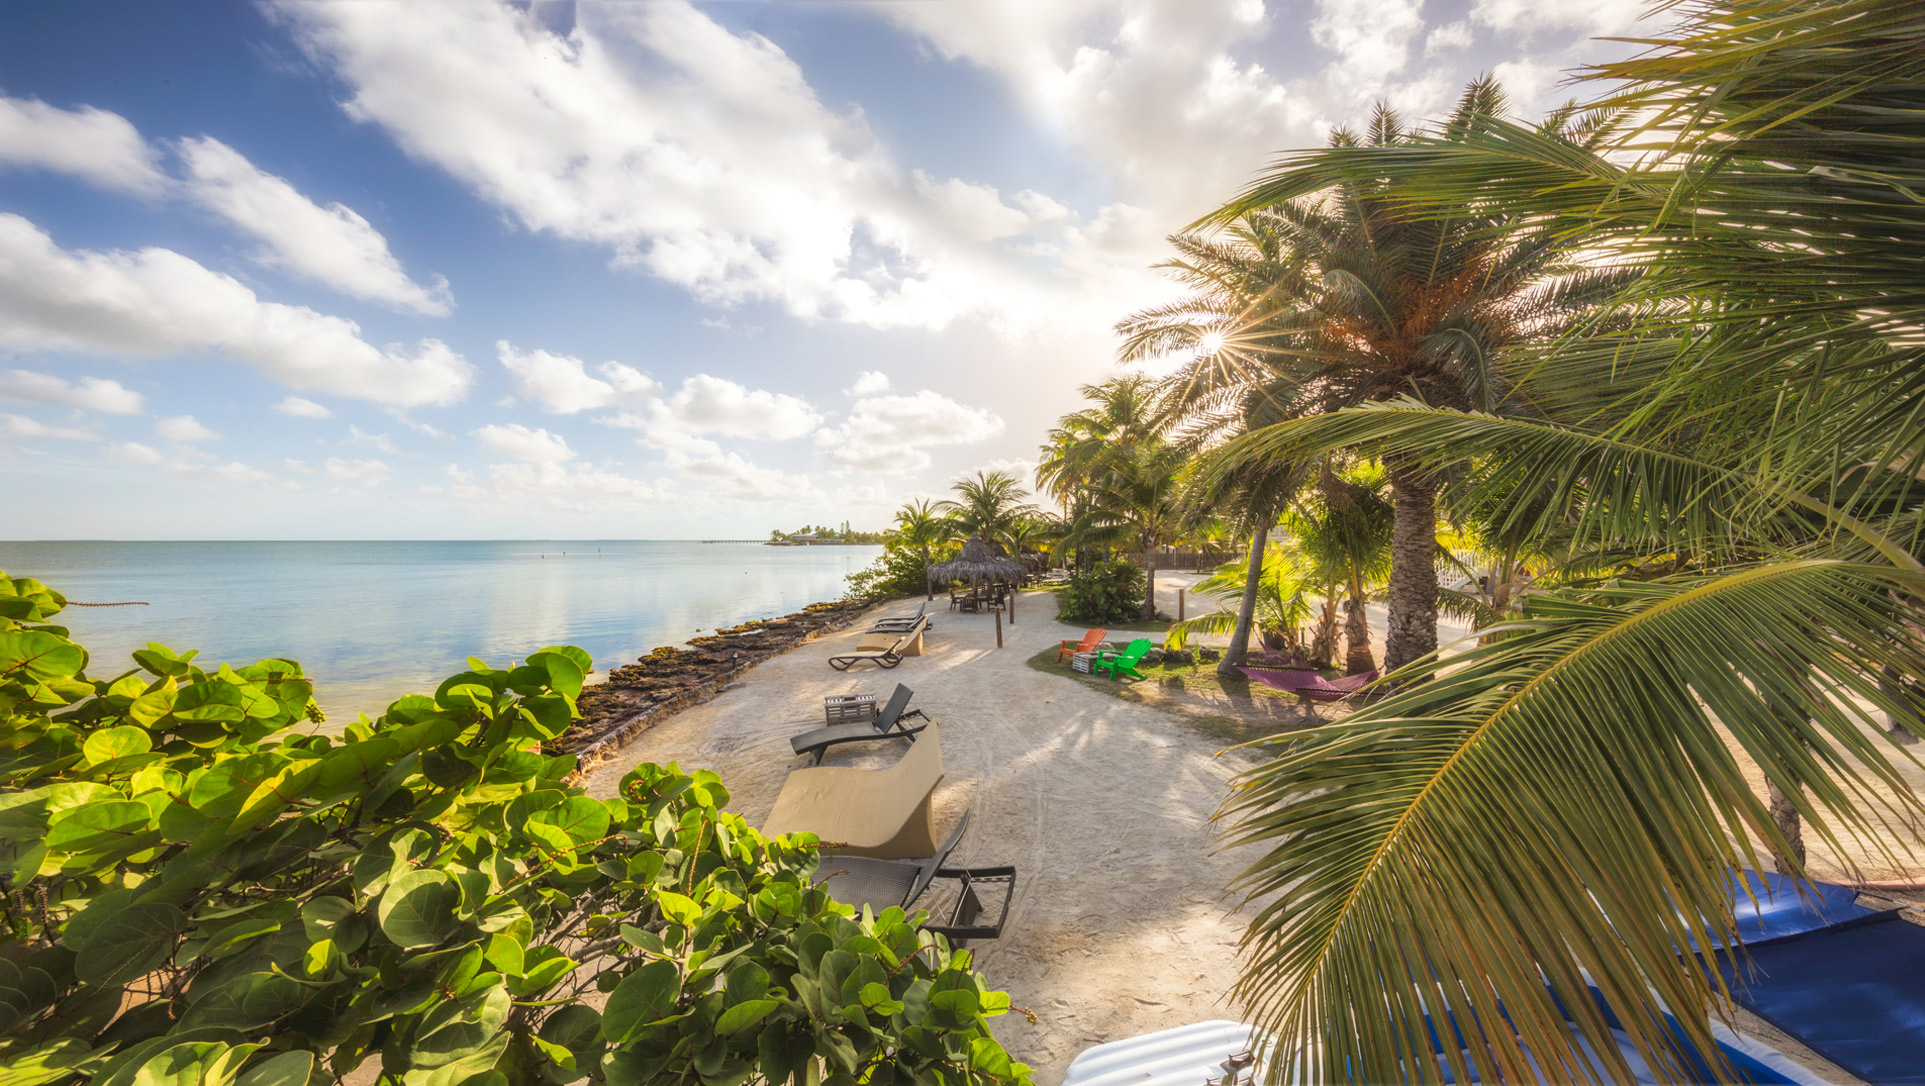 Where to stay in the Keys